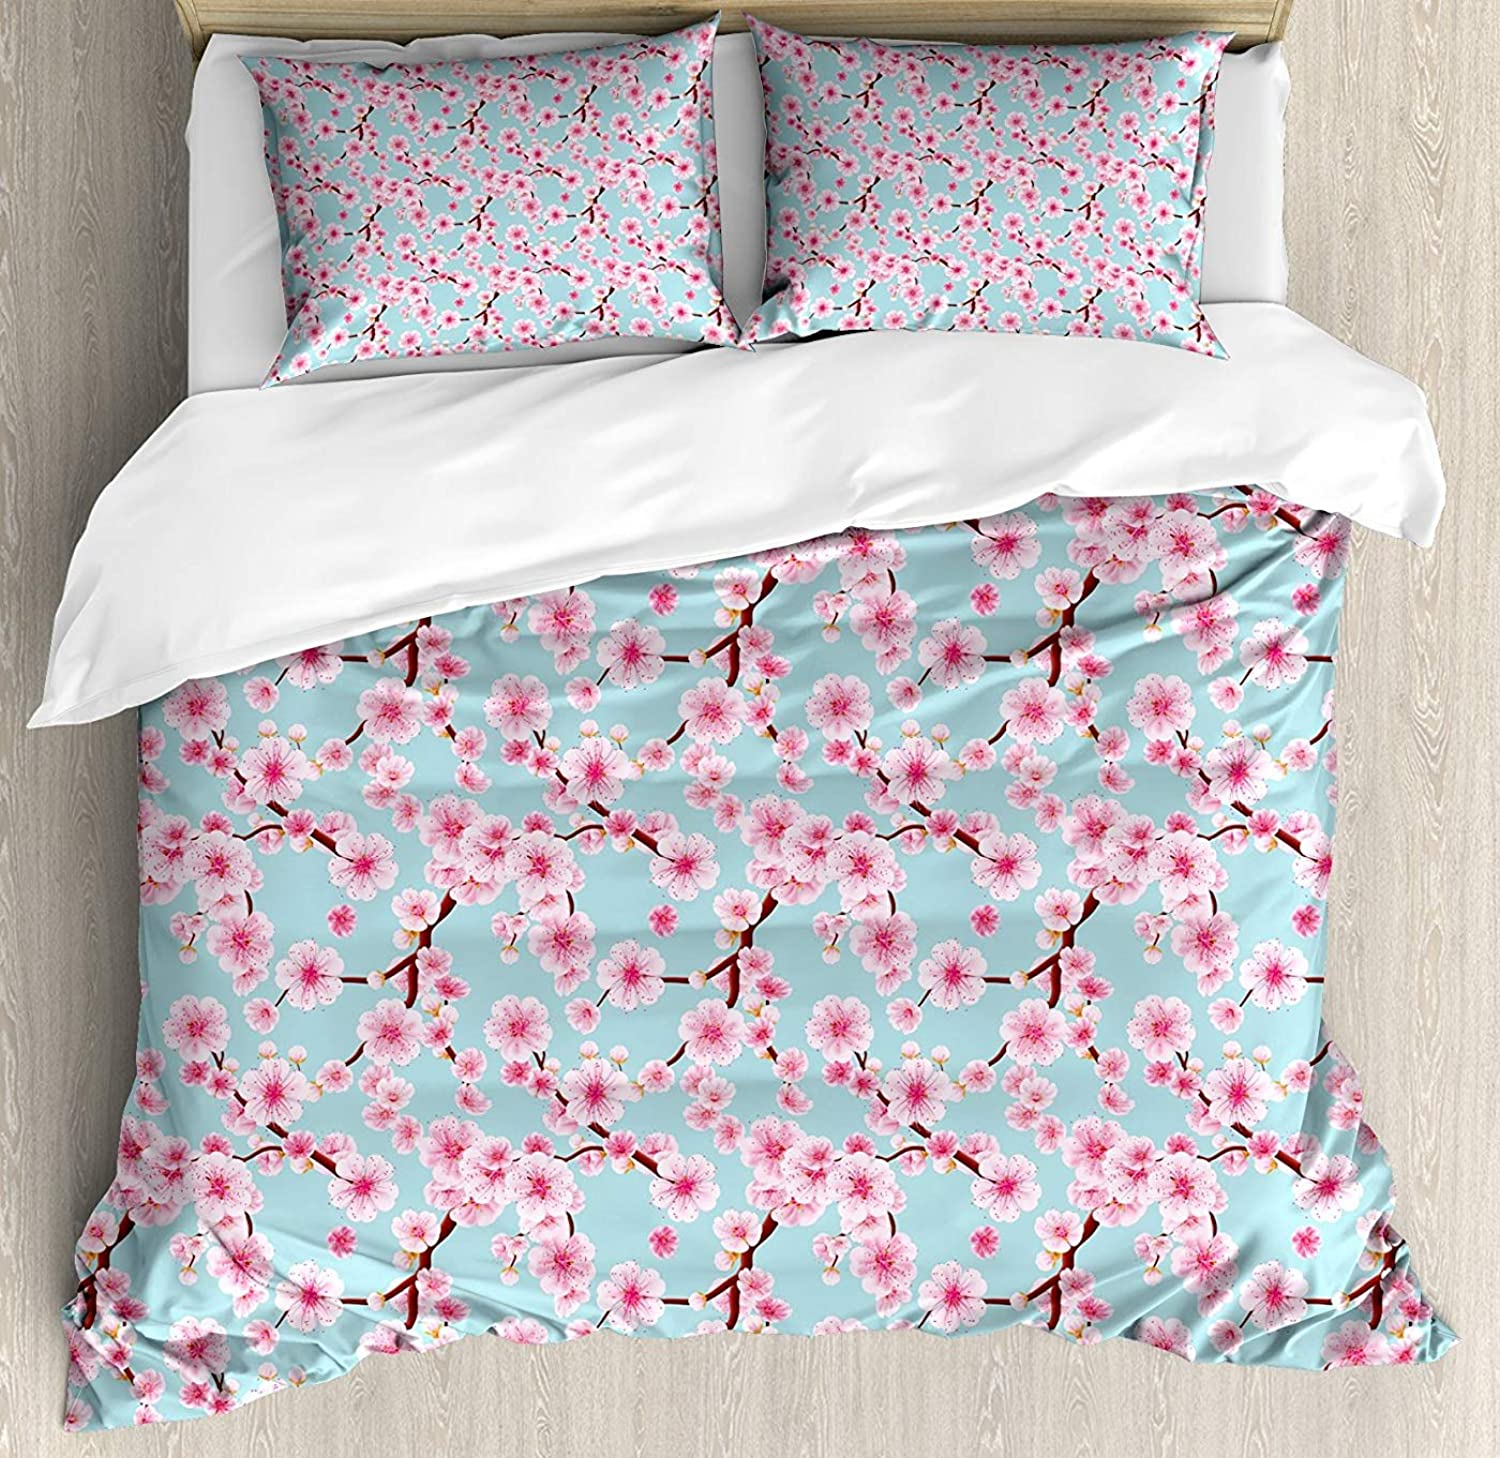 Cherry Blossom Duvet Cover Set Full Size, Inspirational Seasonal Flower Garden Arrangement in Pastel color,Lightweight Microfiber Duvet Cover Sets, Pale bluee Redwood Pink